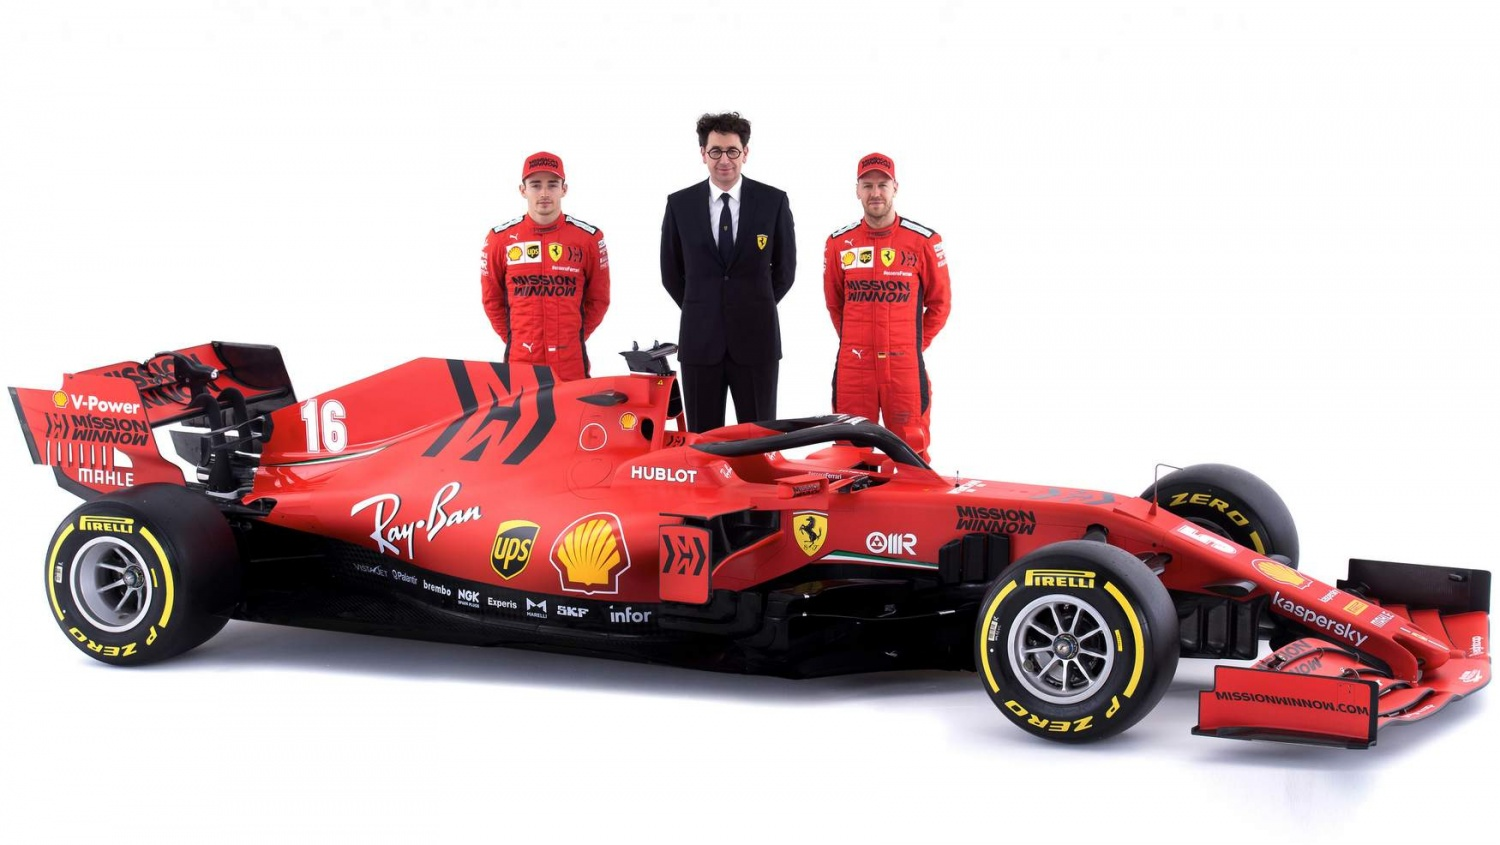 Ferrari unveil the SF1000 ahead of 2020 Formula 1 season